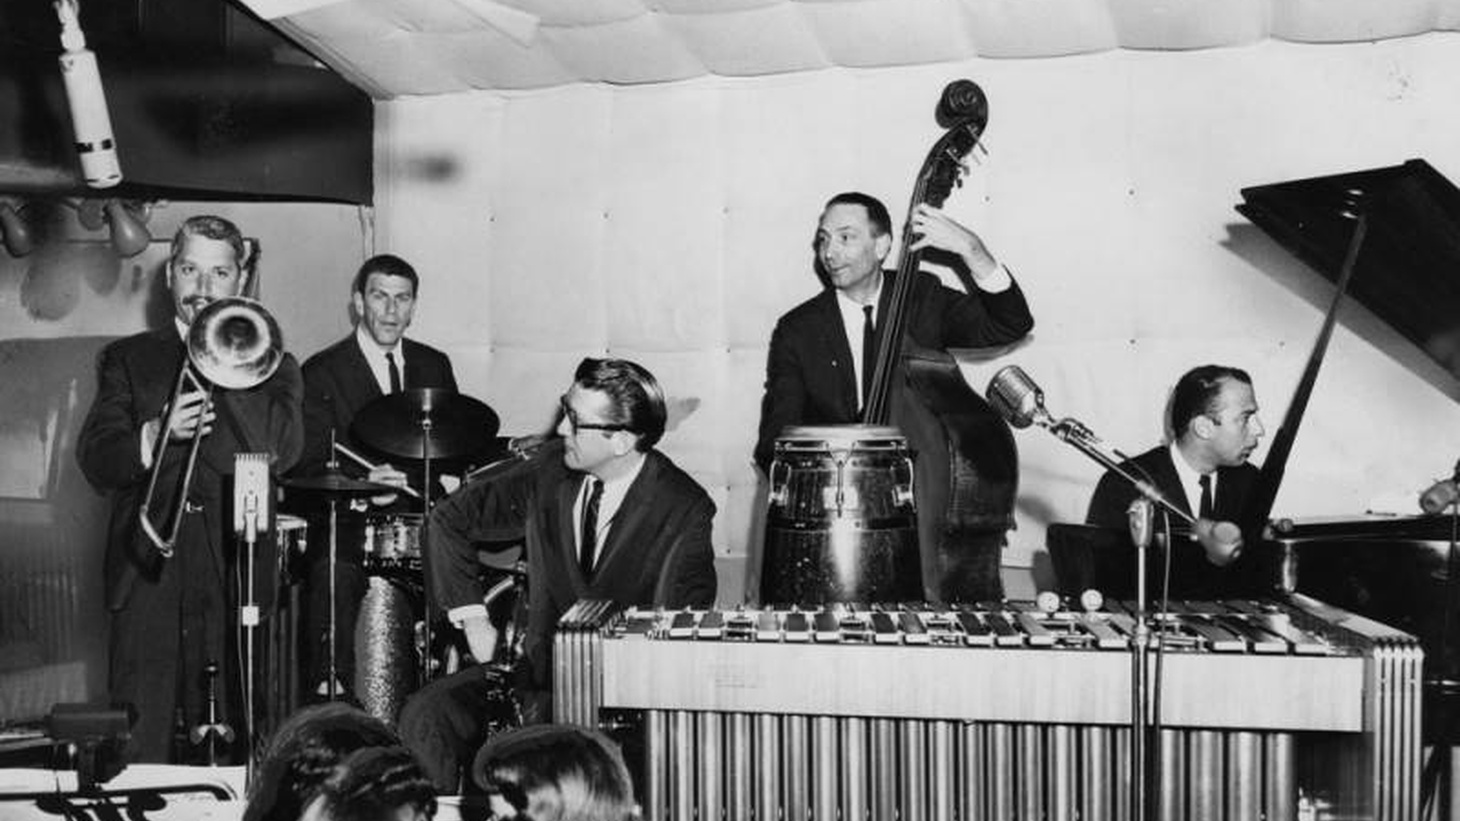 Club Alabam, Plantation Club, and The Lighthouse were hubs of LA's jazz scene during the first half of the 20th century.